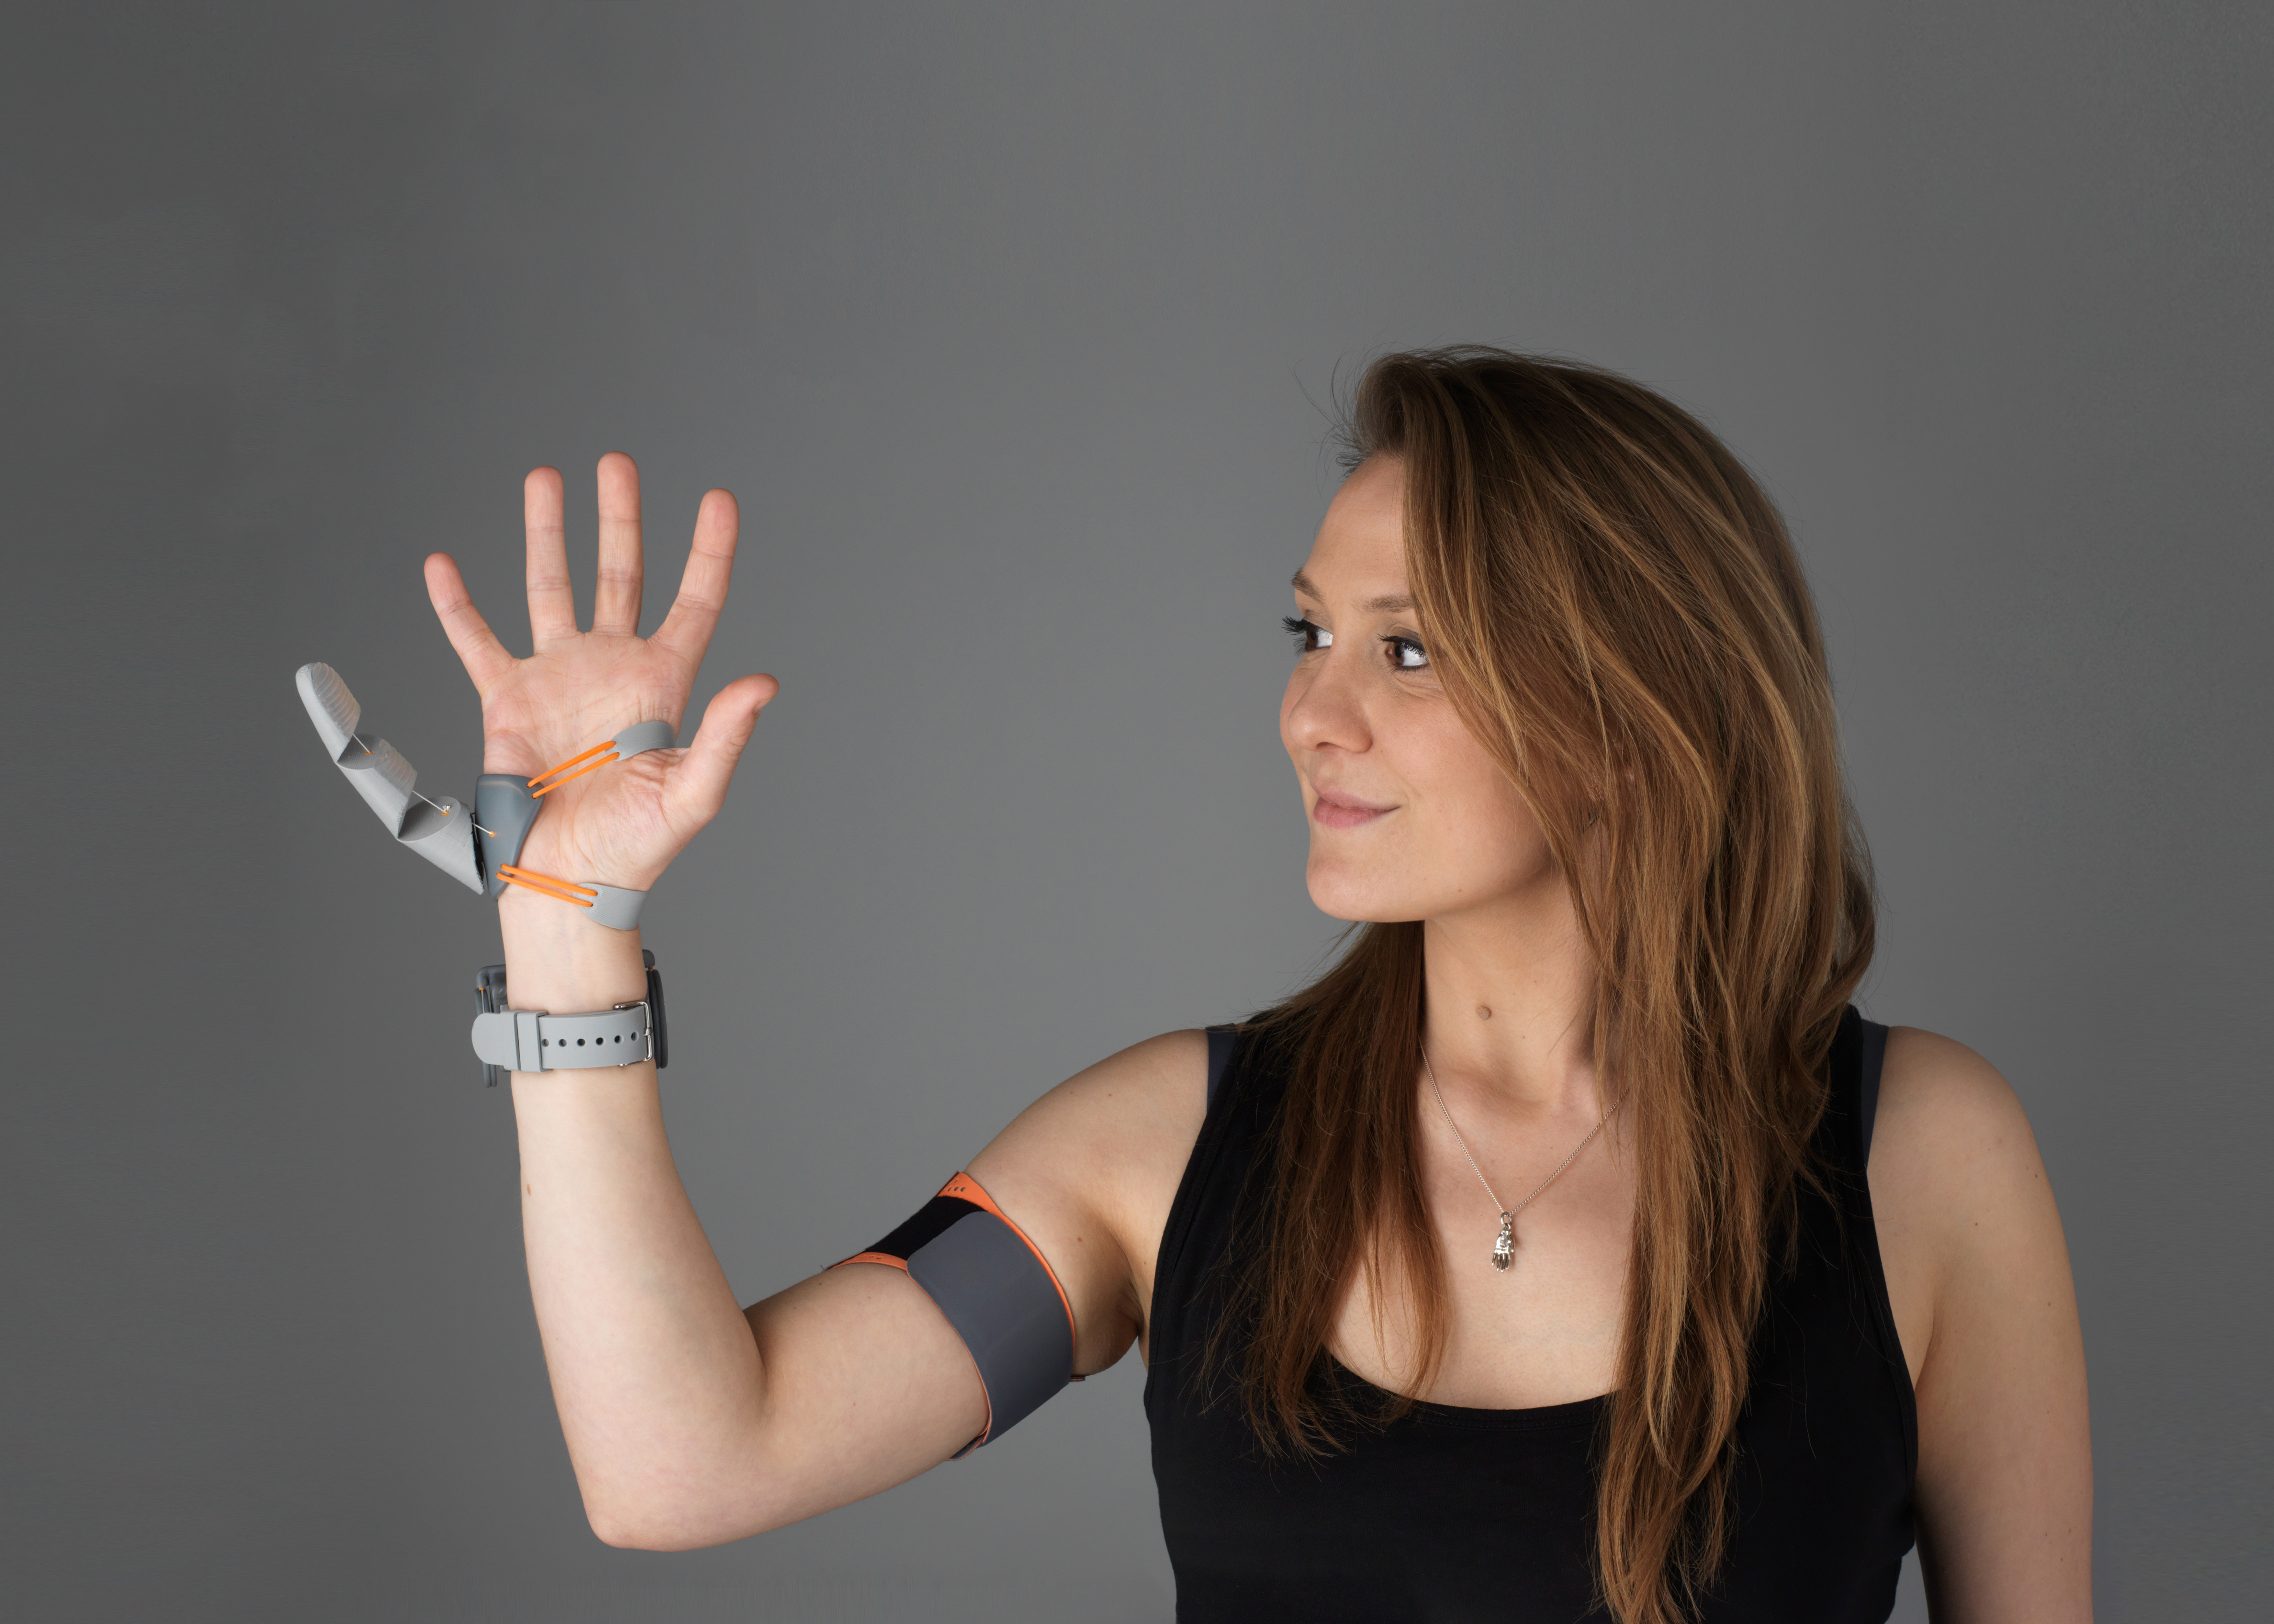 Designer Dani Clode worked with neuroscientists at University College London to investigate how the brain adapts to extra limbs